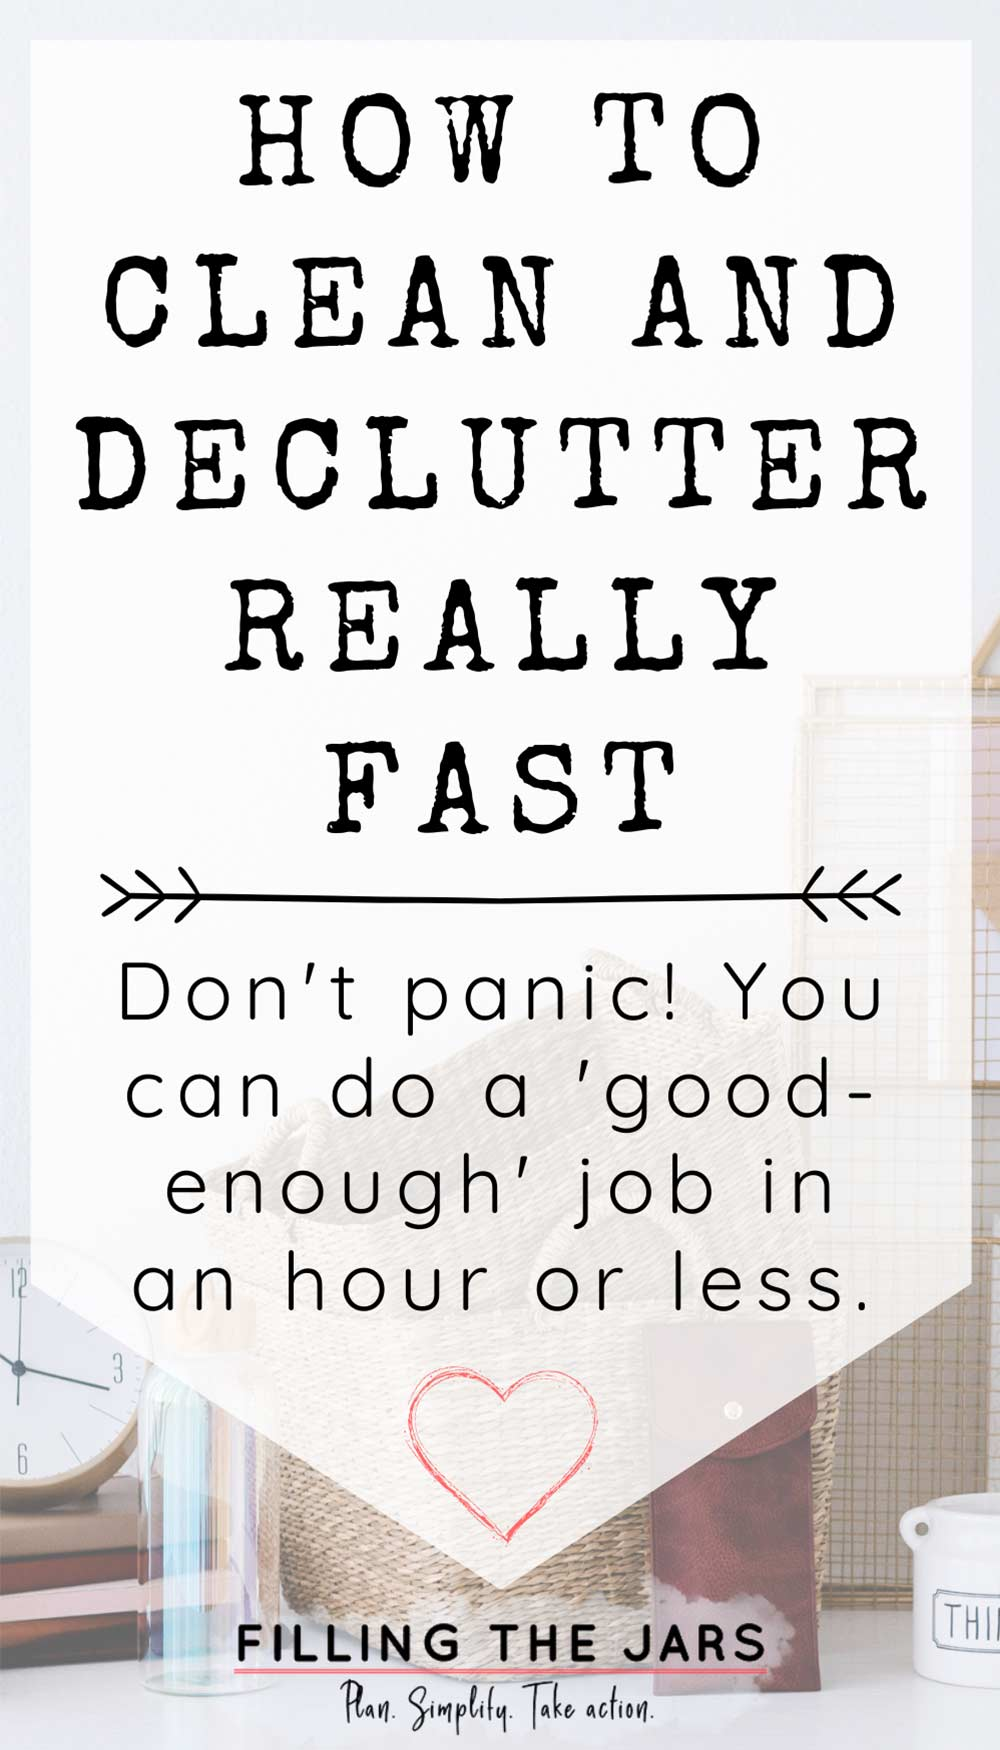 Text how to clean and declutter fast on white background over image of small assortment of household clutter on white table.